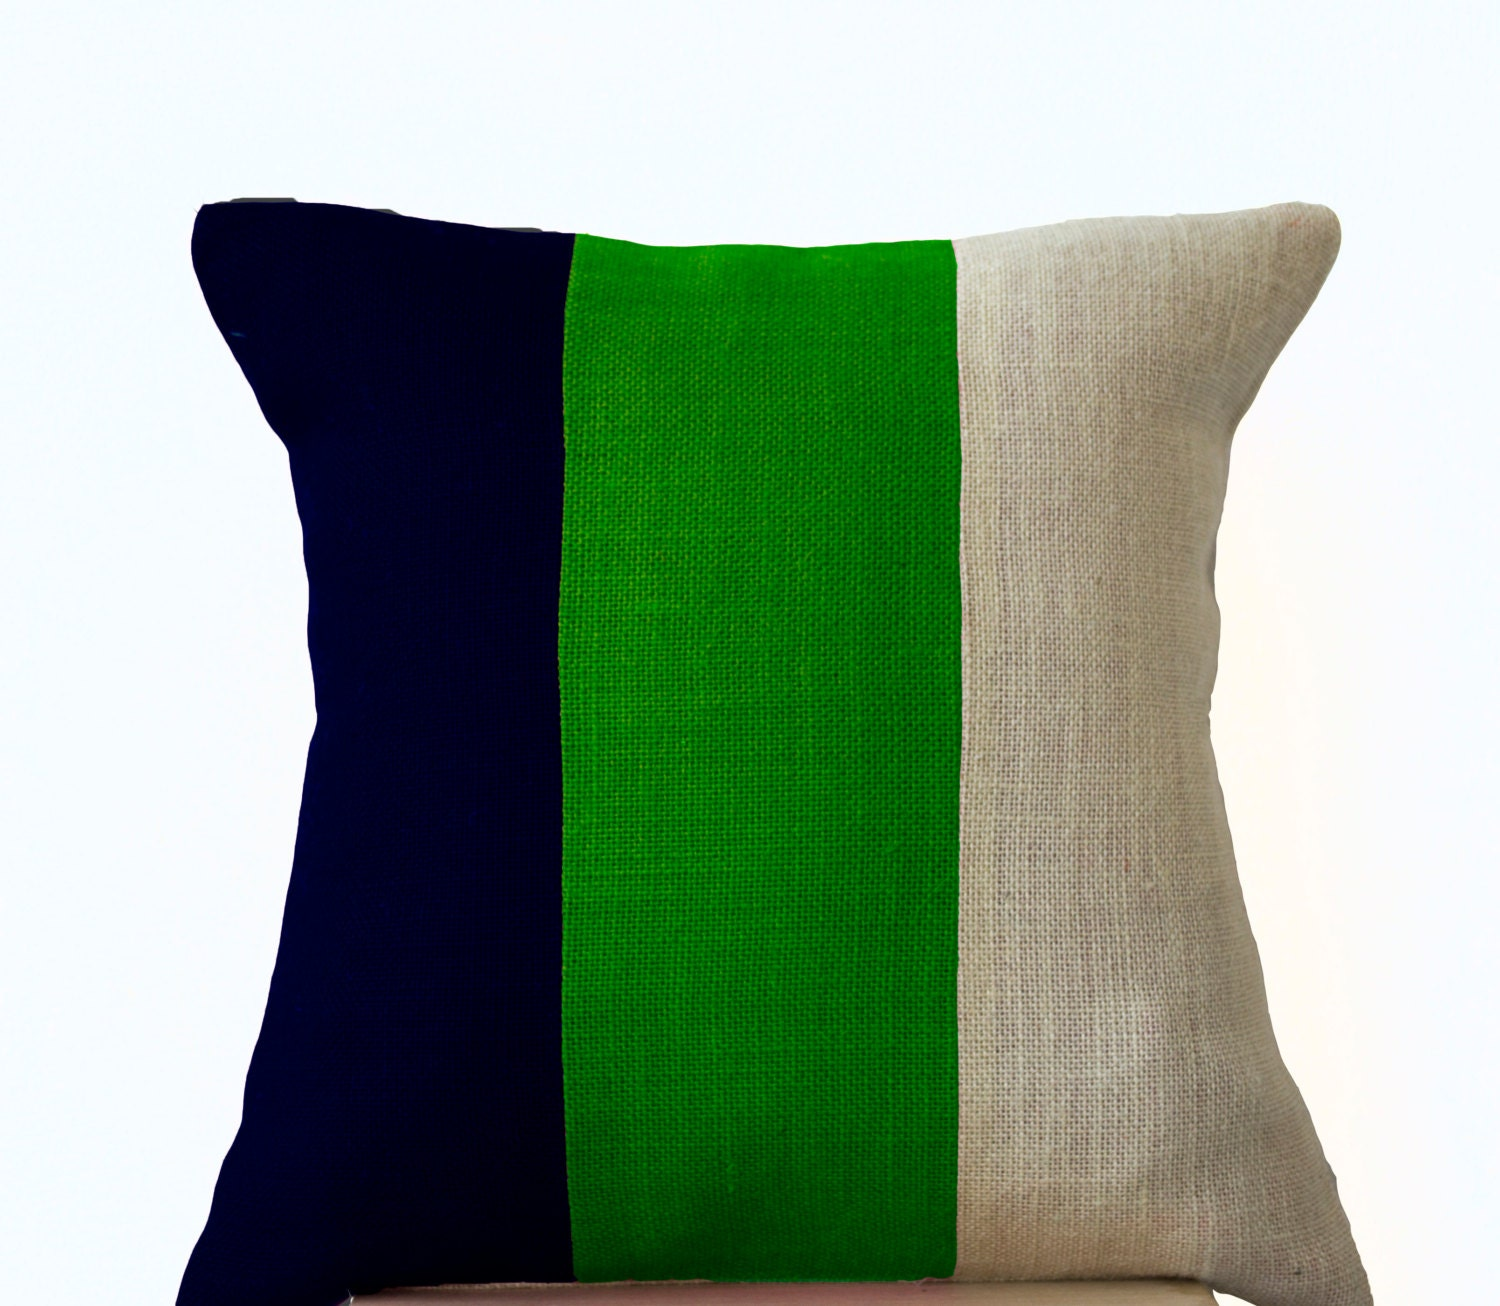 Sofa Pillows Contemporary: Modern Pillow Color Block Contemporary Pillow Cover In Burlap